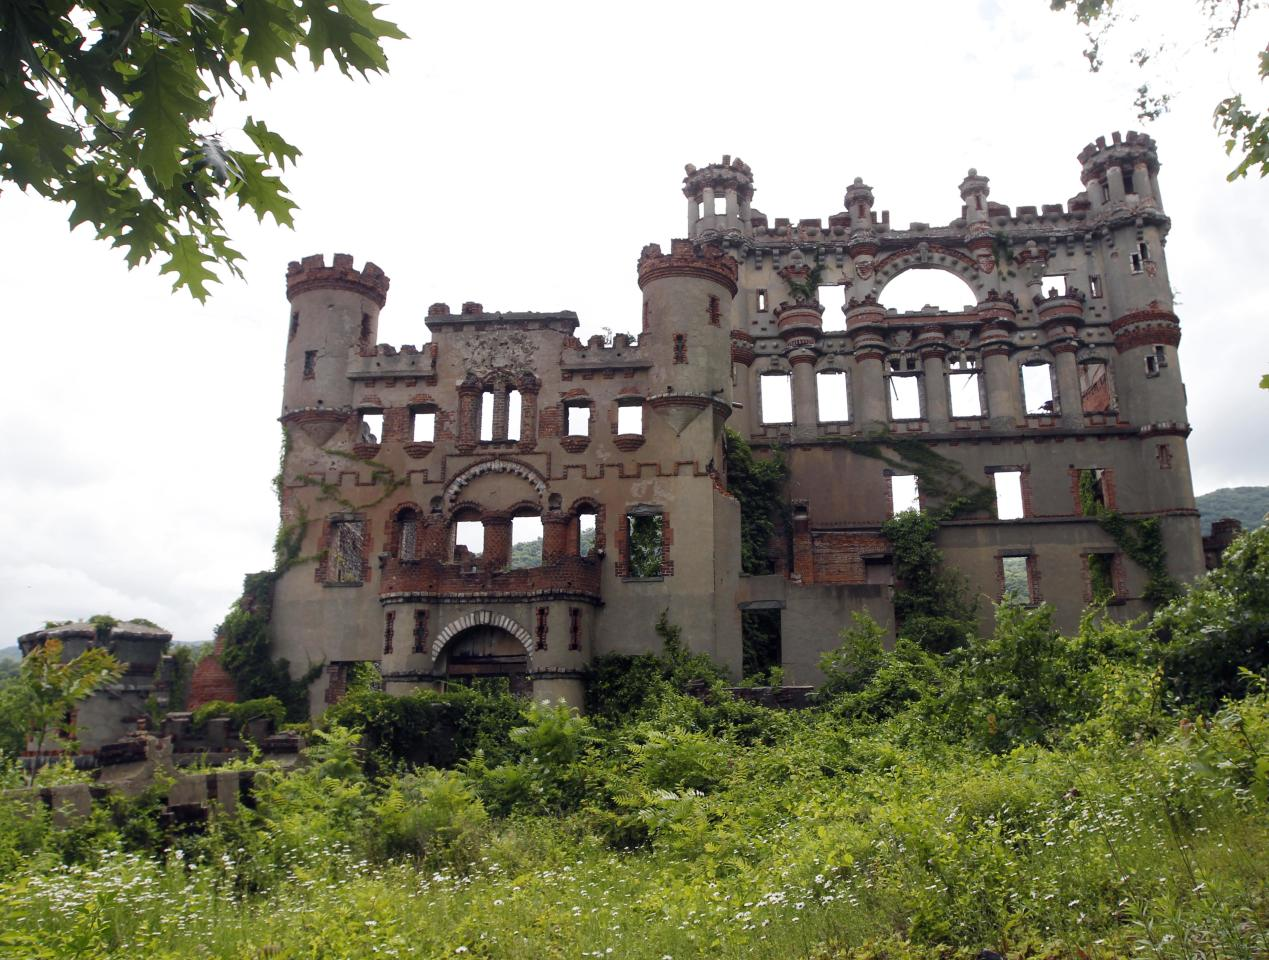 The Bannerman's Island Arsenal is seen on Pollepel Island, N.Y., on Tuesday, June 5, 2012. Though it looks like it was built to withstand battering rams, it was actually a surplus military goods warehouse made to resemble a Scottish castle. Businessman Francis Bannerman VI had it built early in the 20th century as a place to store helmets, haversacks, mess kits and munitions he could not store in his thriving shop in Manhattan. (AP Photo/Mike Groll)